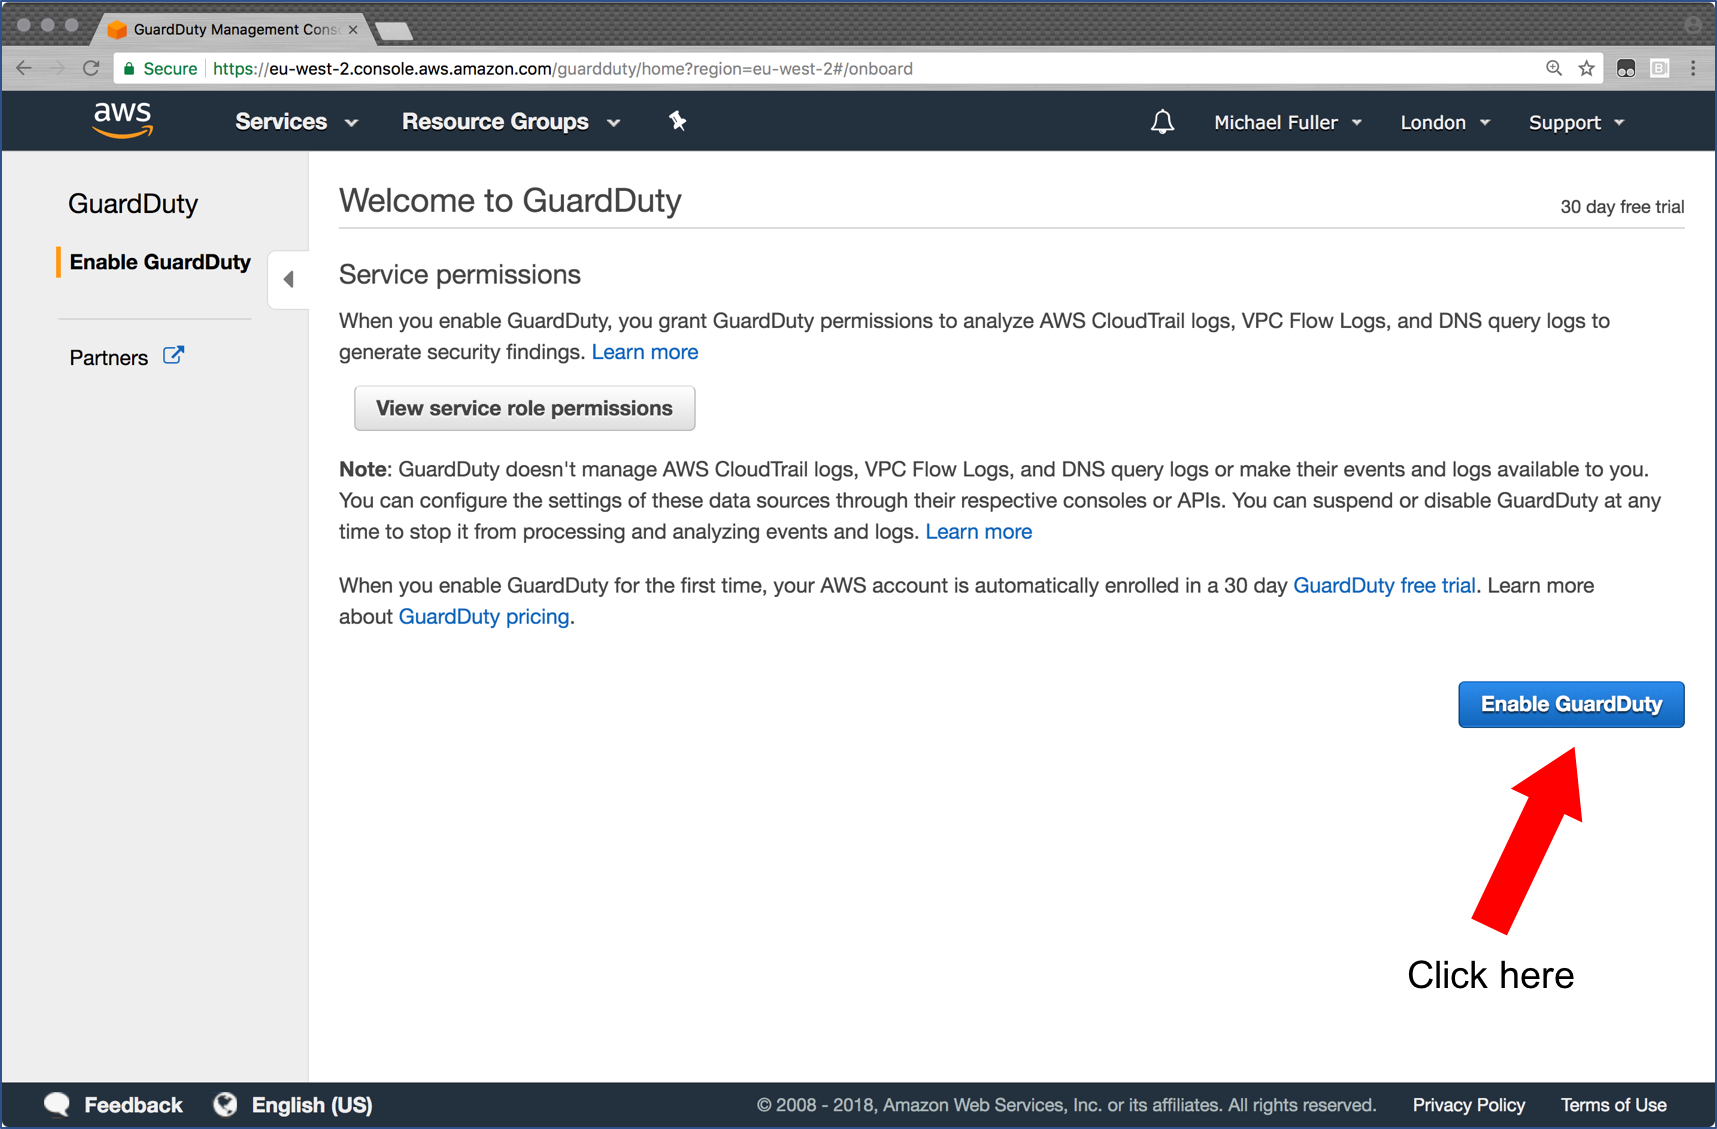 Enable GuardDuty page showing the Enable button